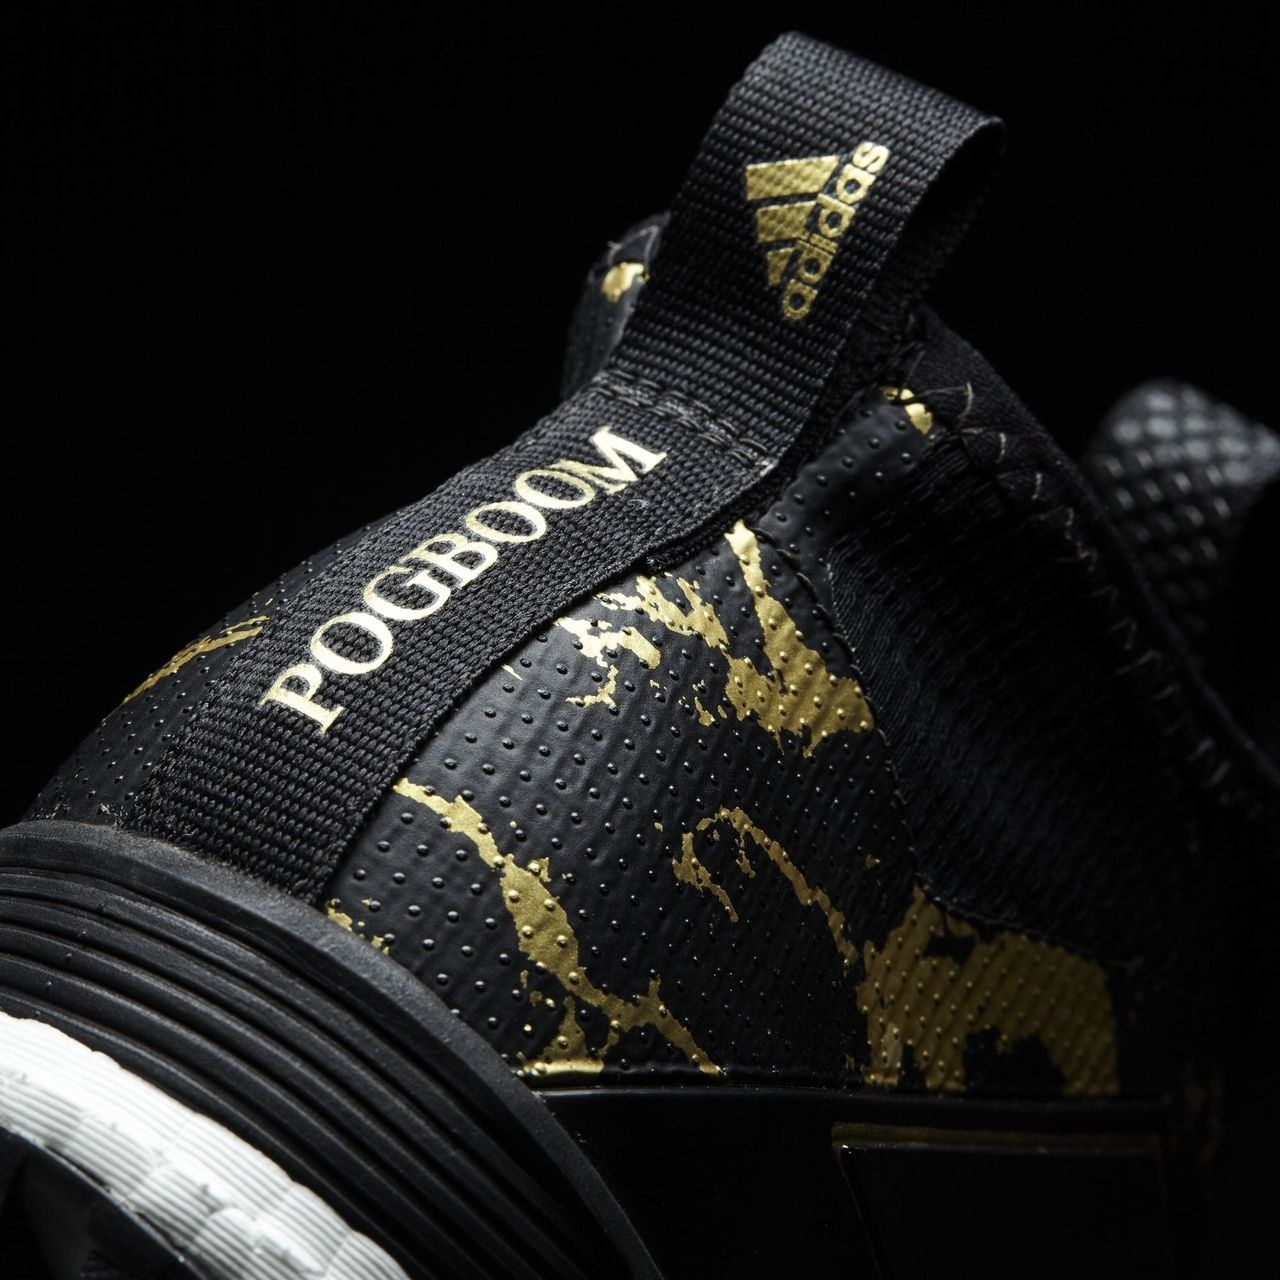 6efe892645ea ... Click to enlarge image  adidas_pp_ace_tango_17_purecontrol_turf_boots_core_black_matte_gold_f.jpg  ...